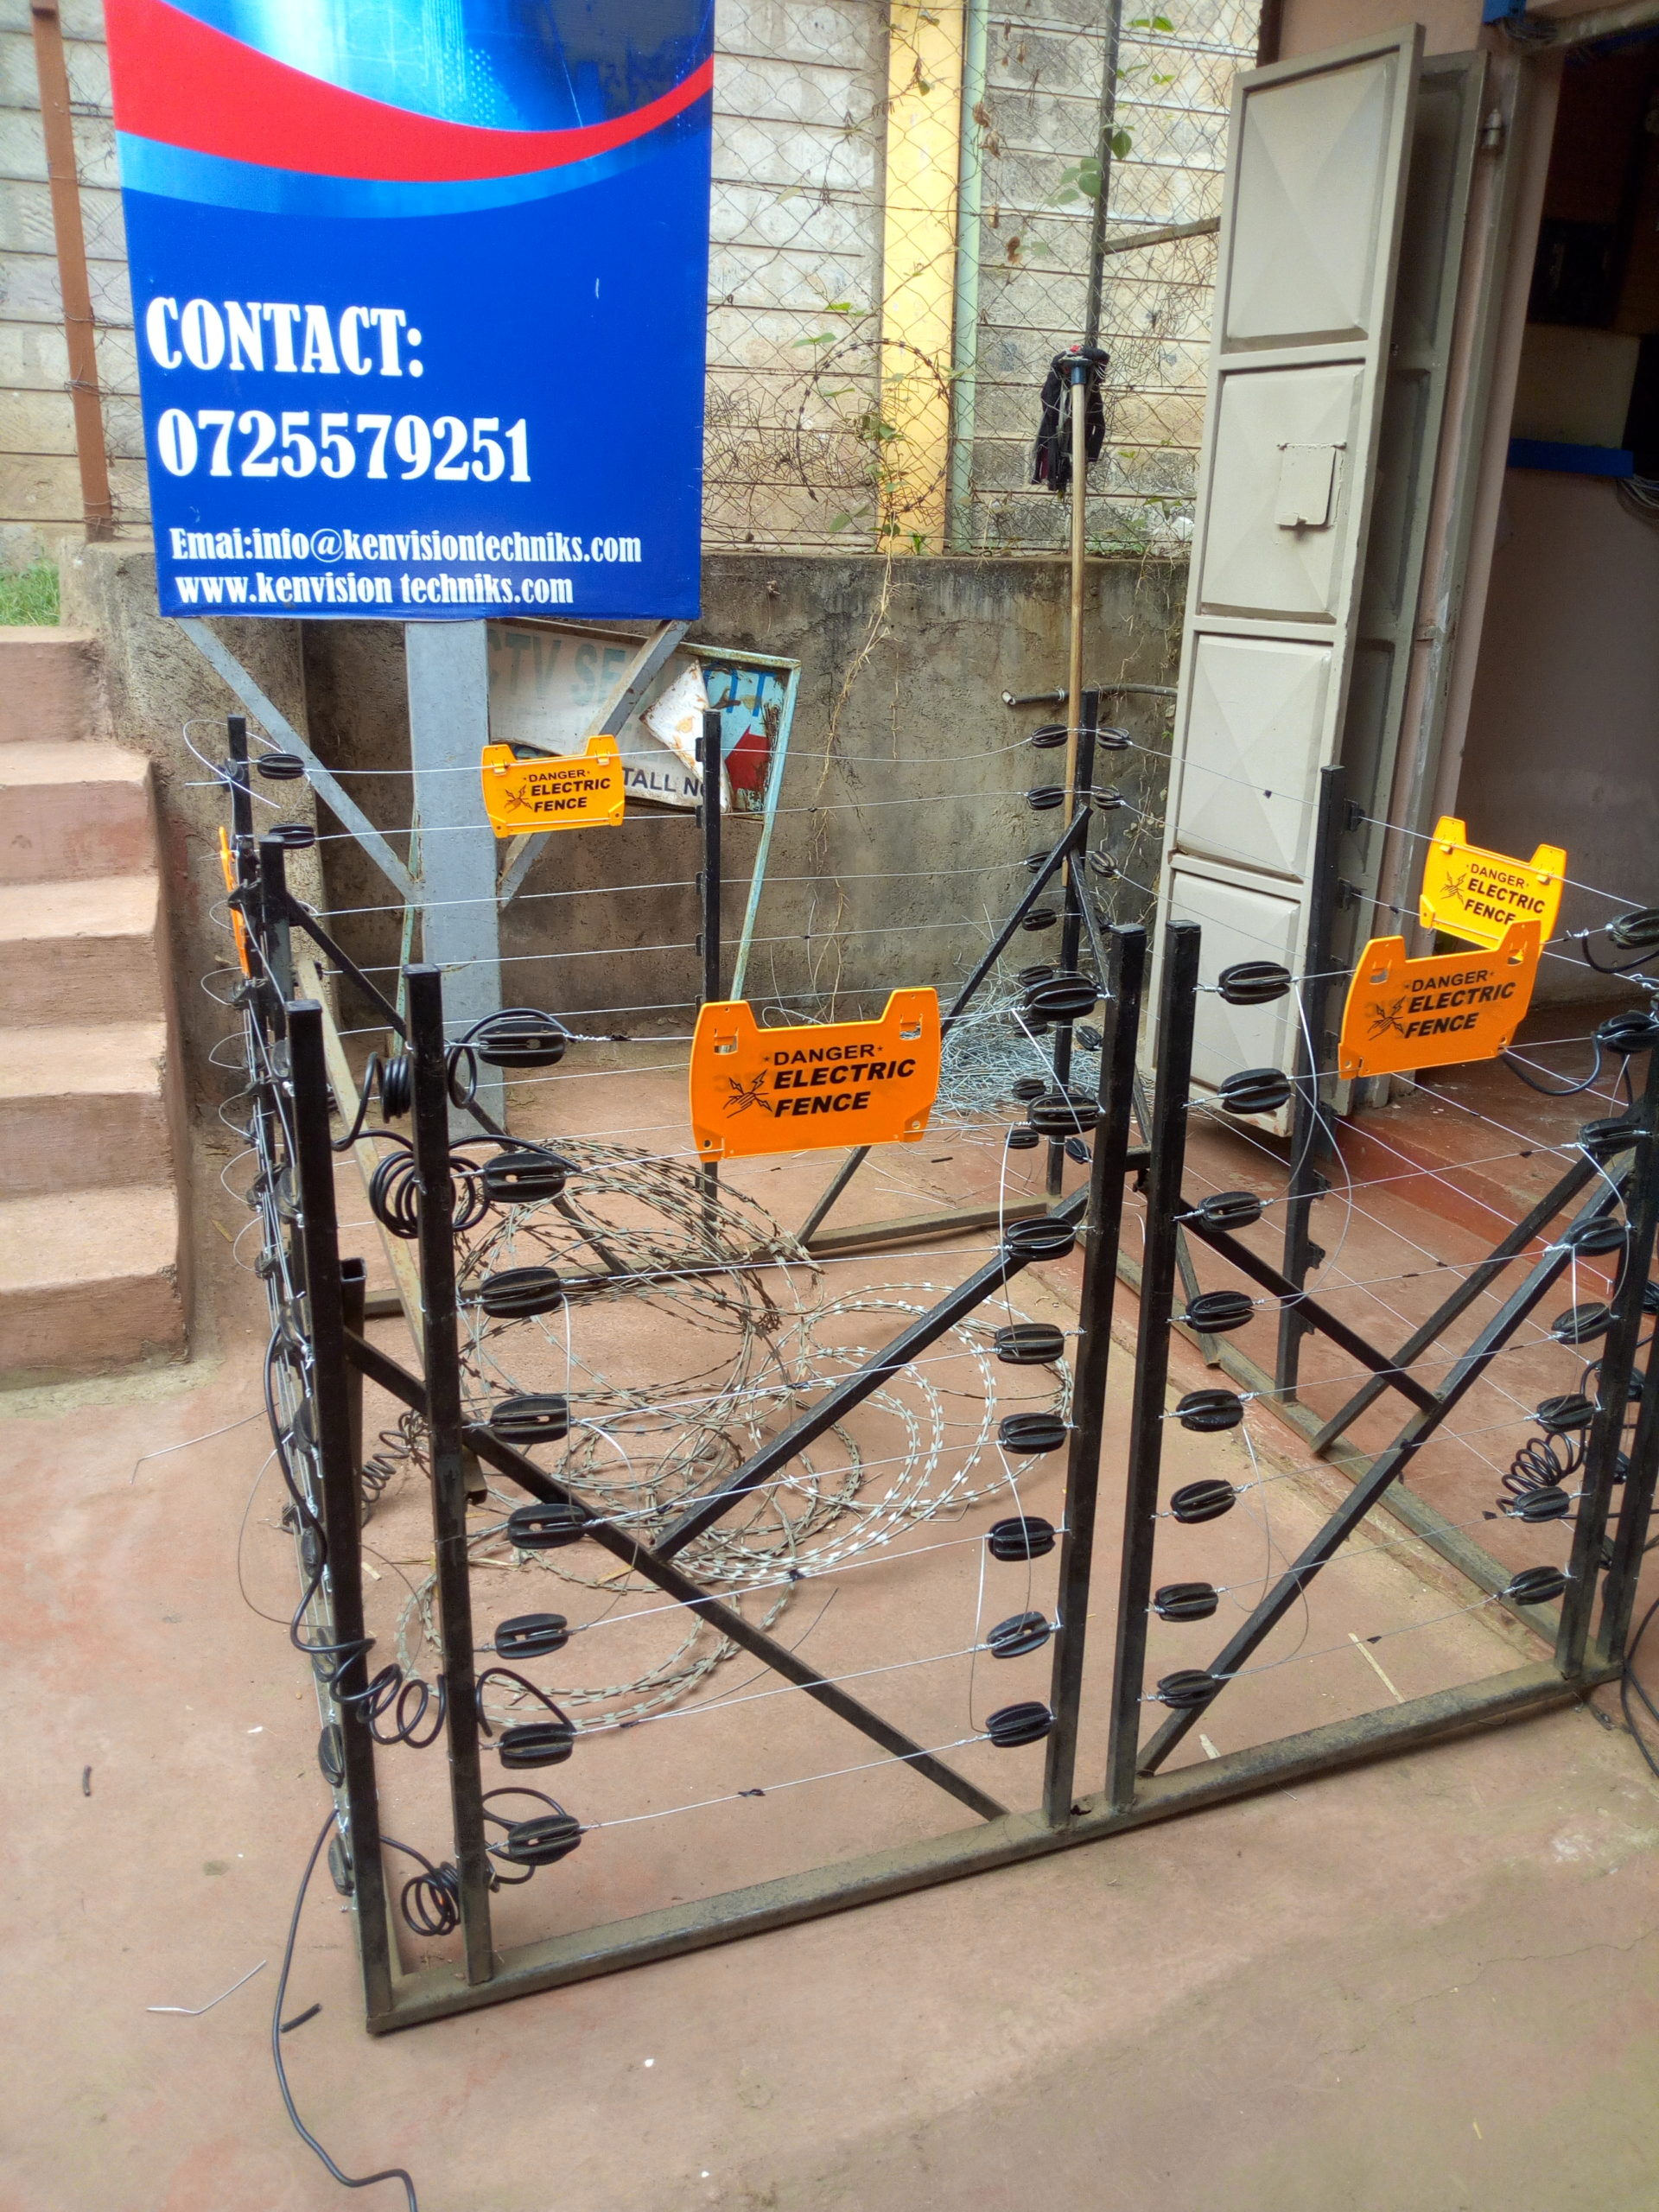 Electric Fence Training model